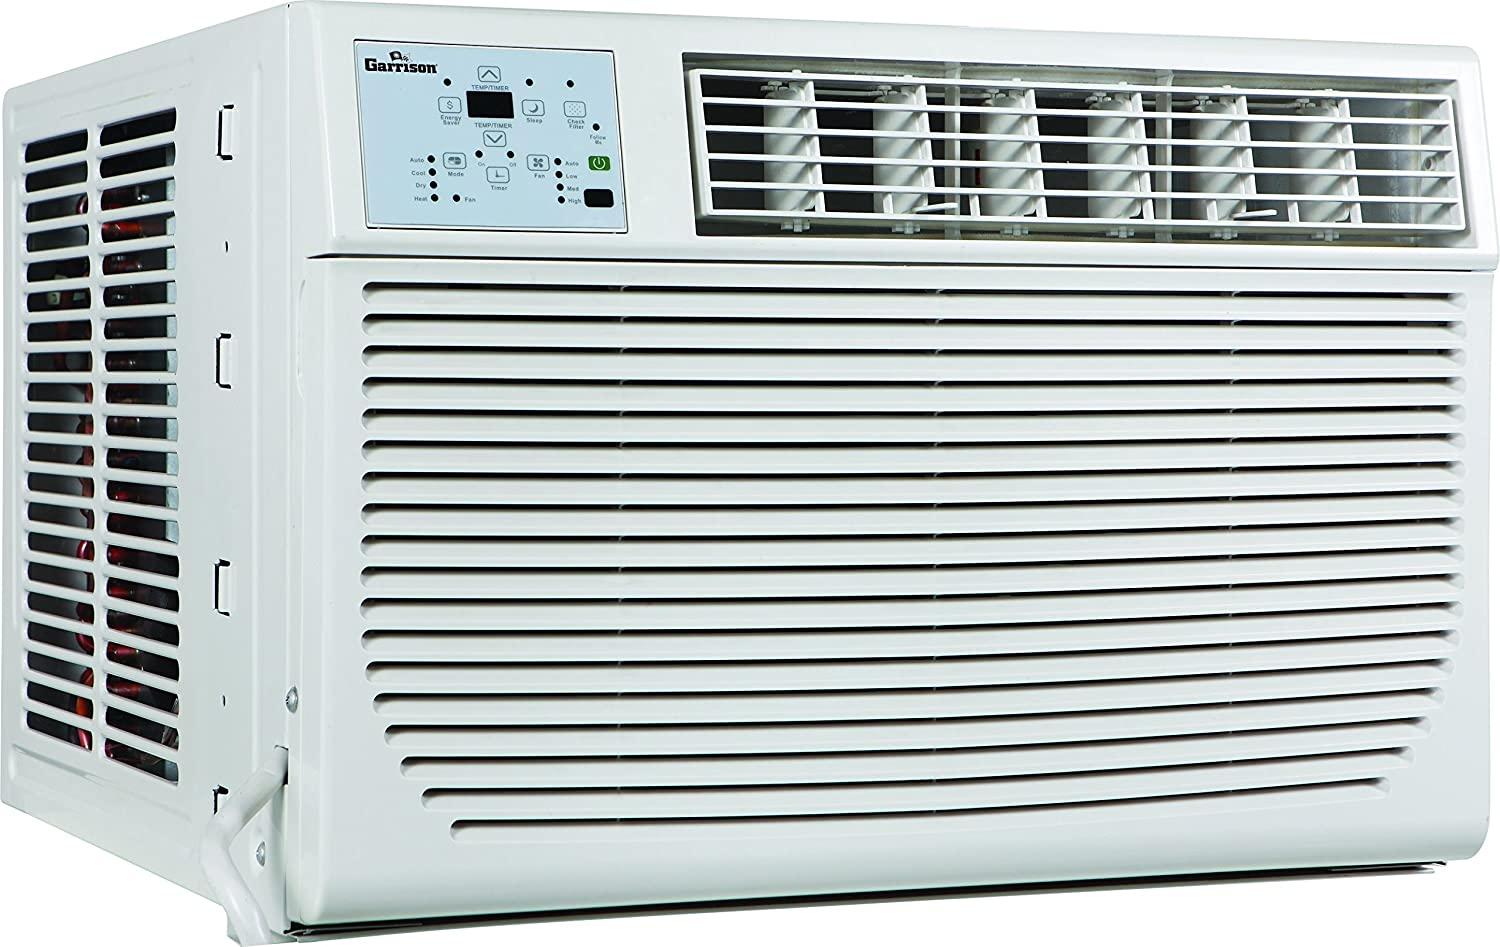 Garrison 2477802 R-410A Through-The-Window Heat Cool Air Conditioner with Remote Control, 12000 BTU, White